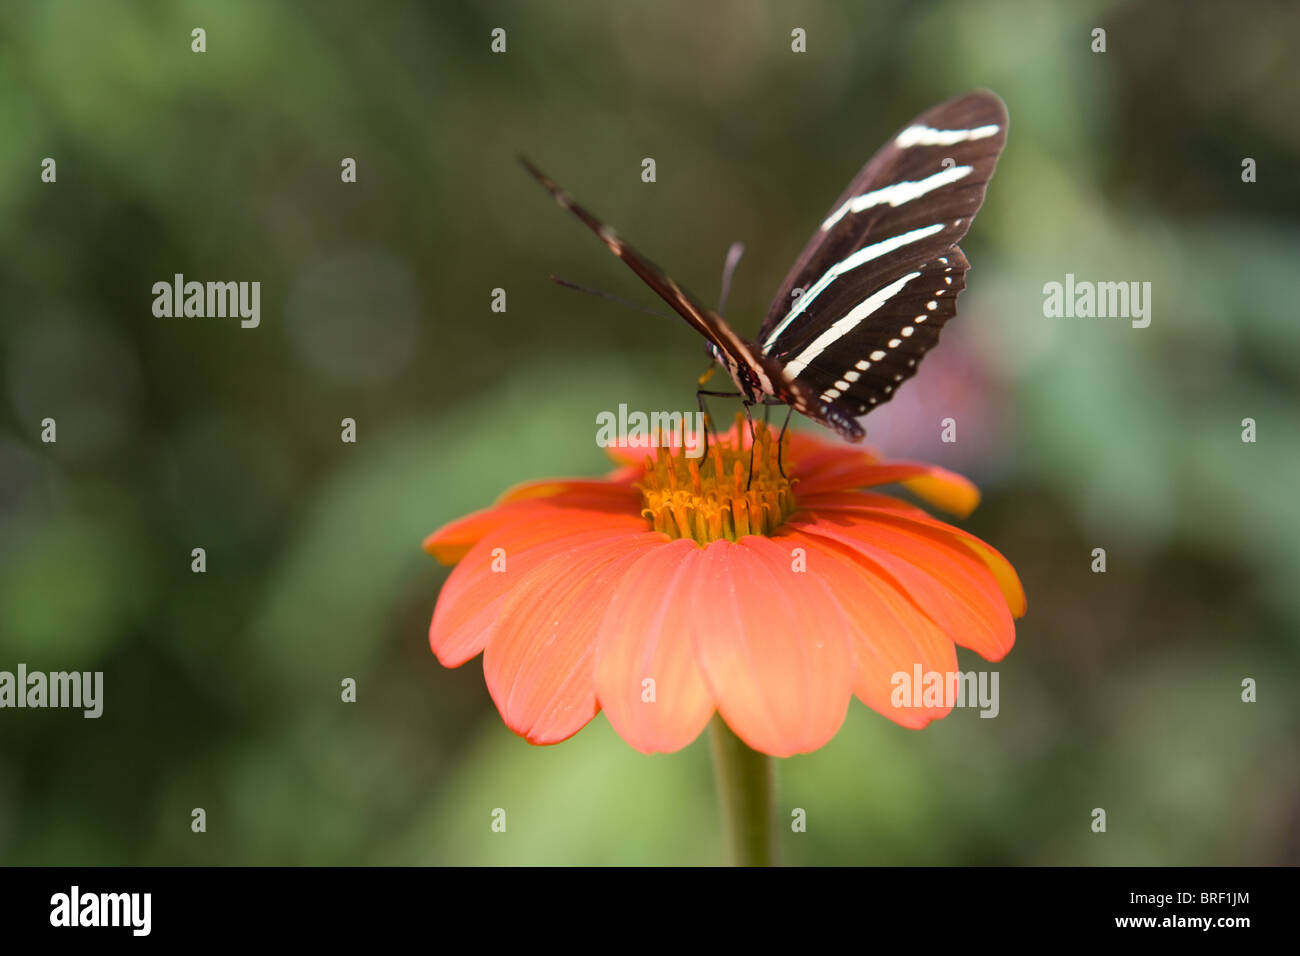 zebra butterfly drinking nectar from a zinnia flower, black and white stripes, peace, peaceful, nature delicate - Stock Image